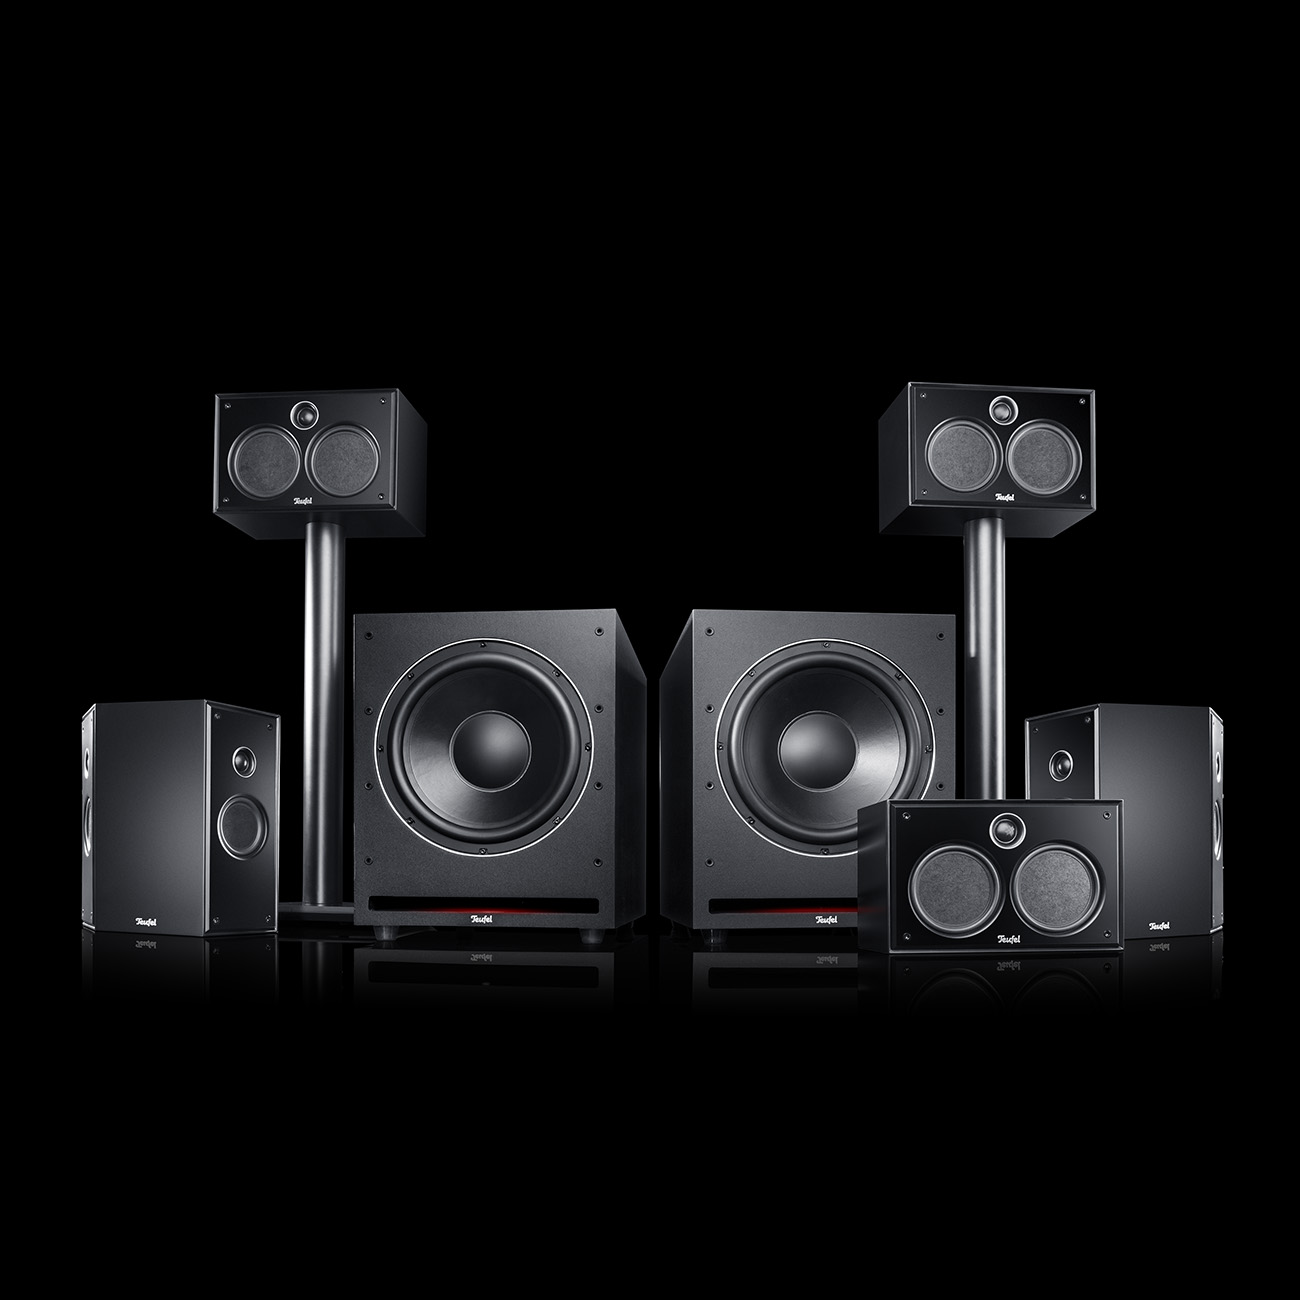 system-6-thx-select-black-on-black-1300x1300x72.jpg